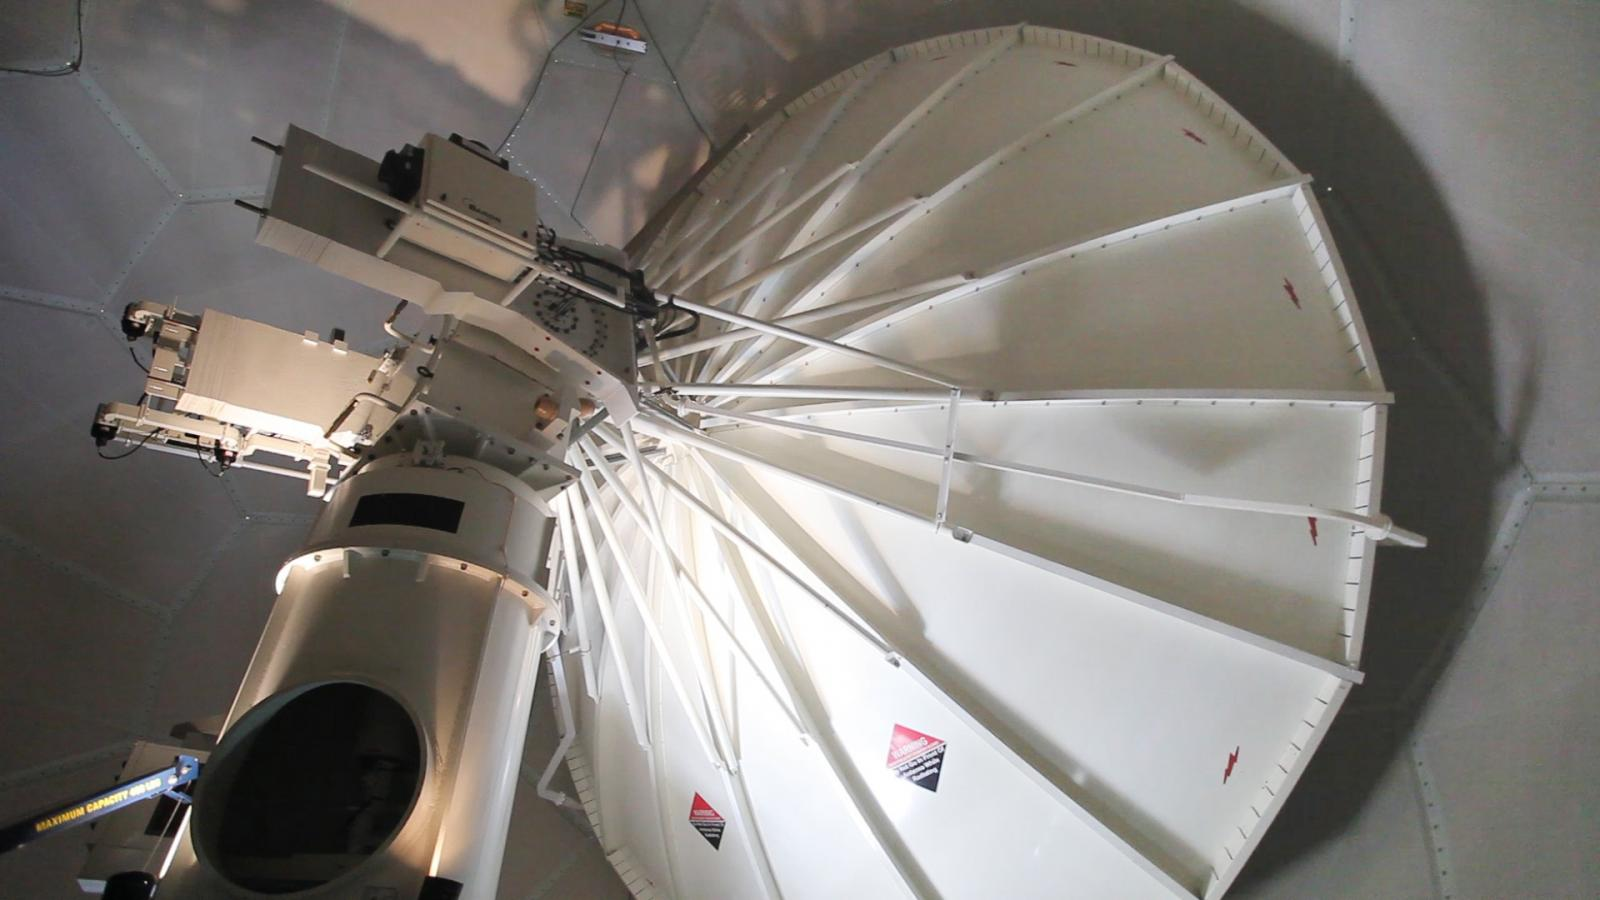 The radar receiving dish inside the protective cover. Dual-pol is both a hardware and software upgrade to the radar.